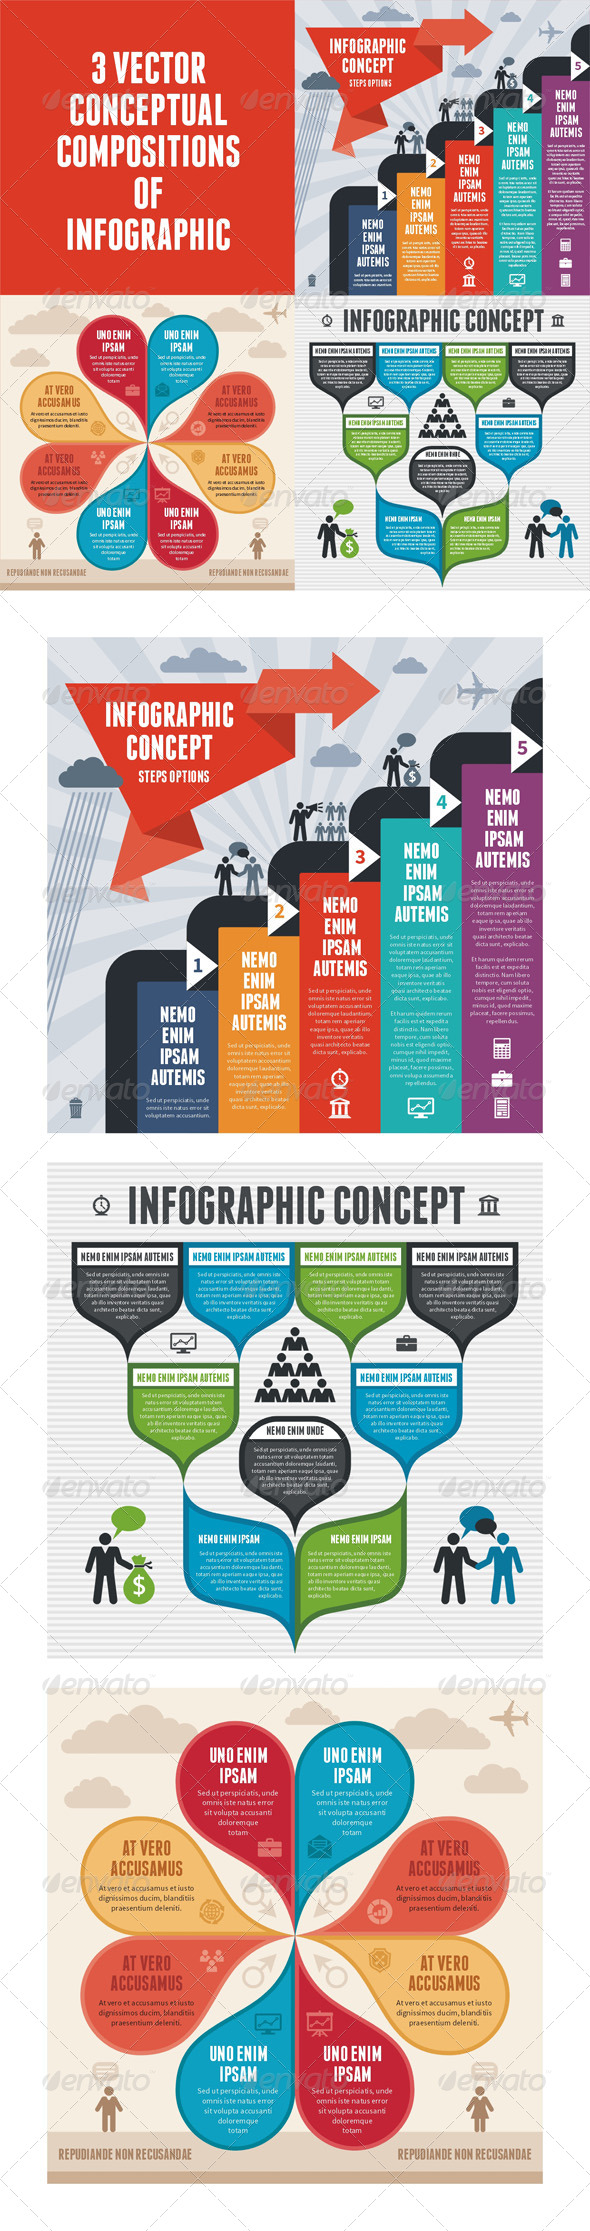 GraphicRiver Infographic Concept 3 Vector Schemes 5604147